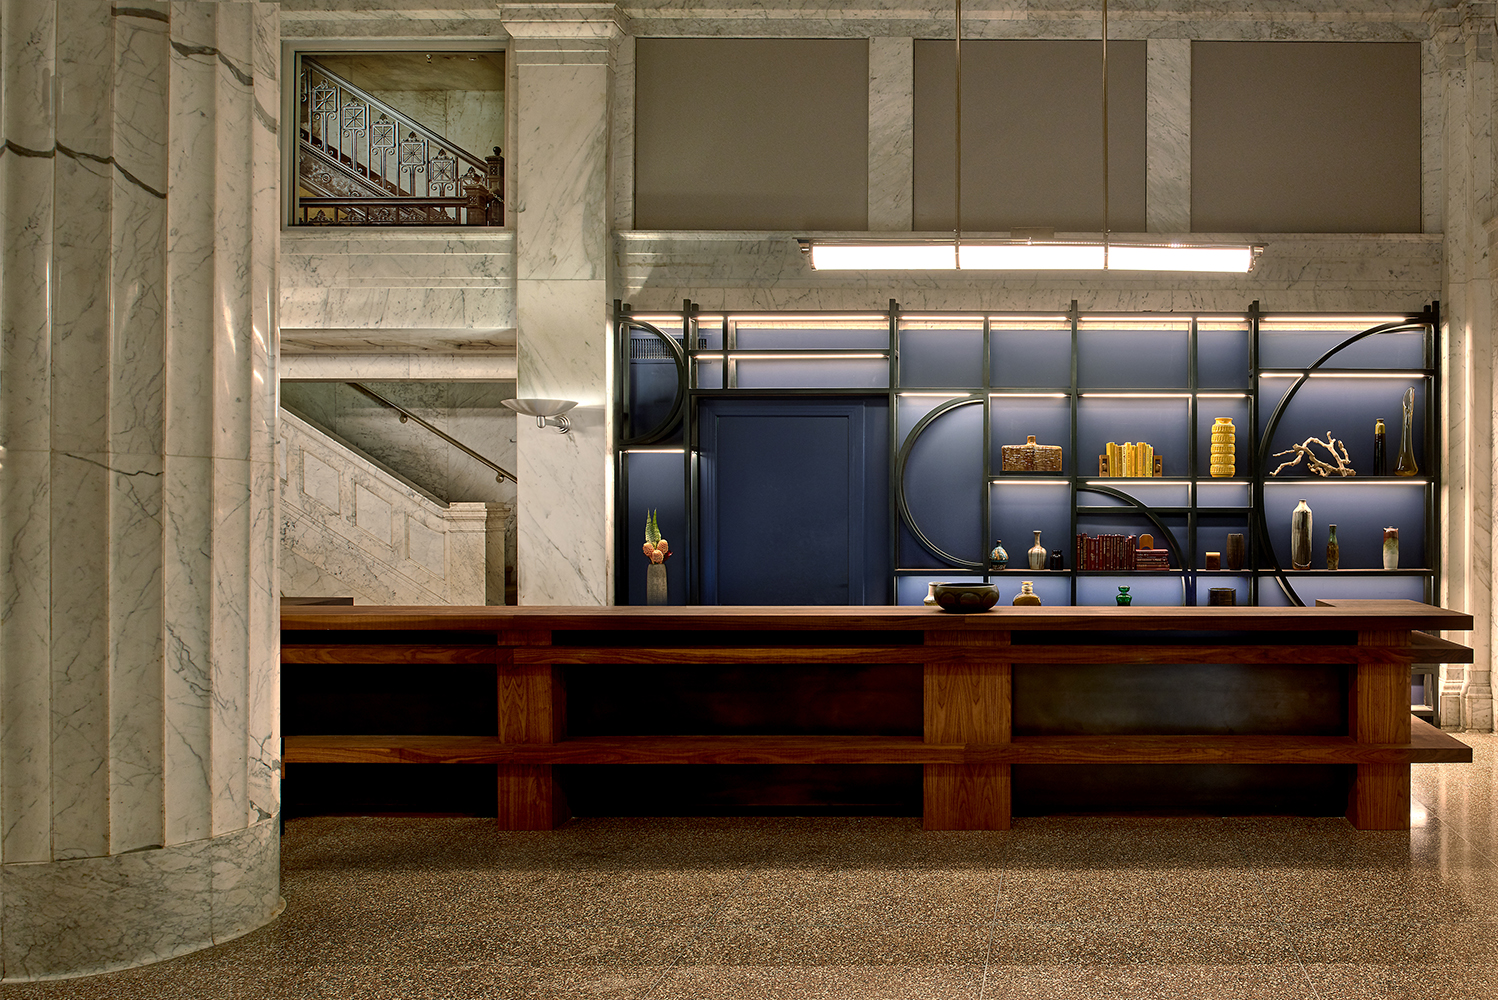 The Hotel Minneapolis reopened following a full transformation and rebrand.